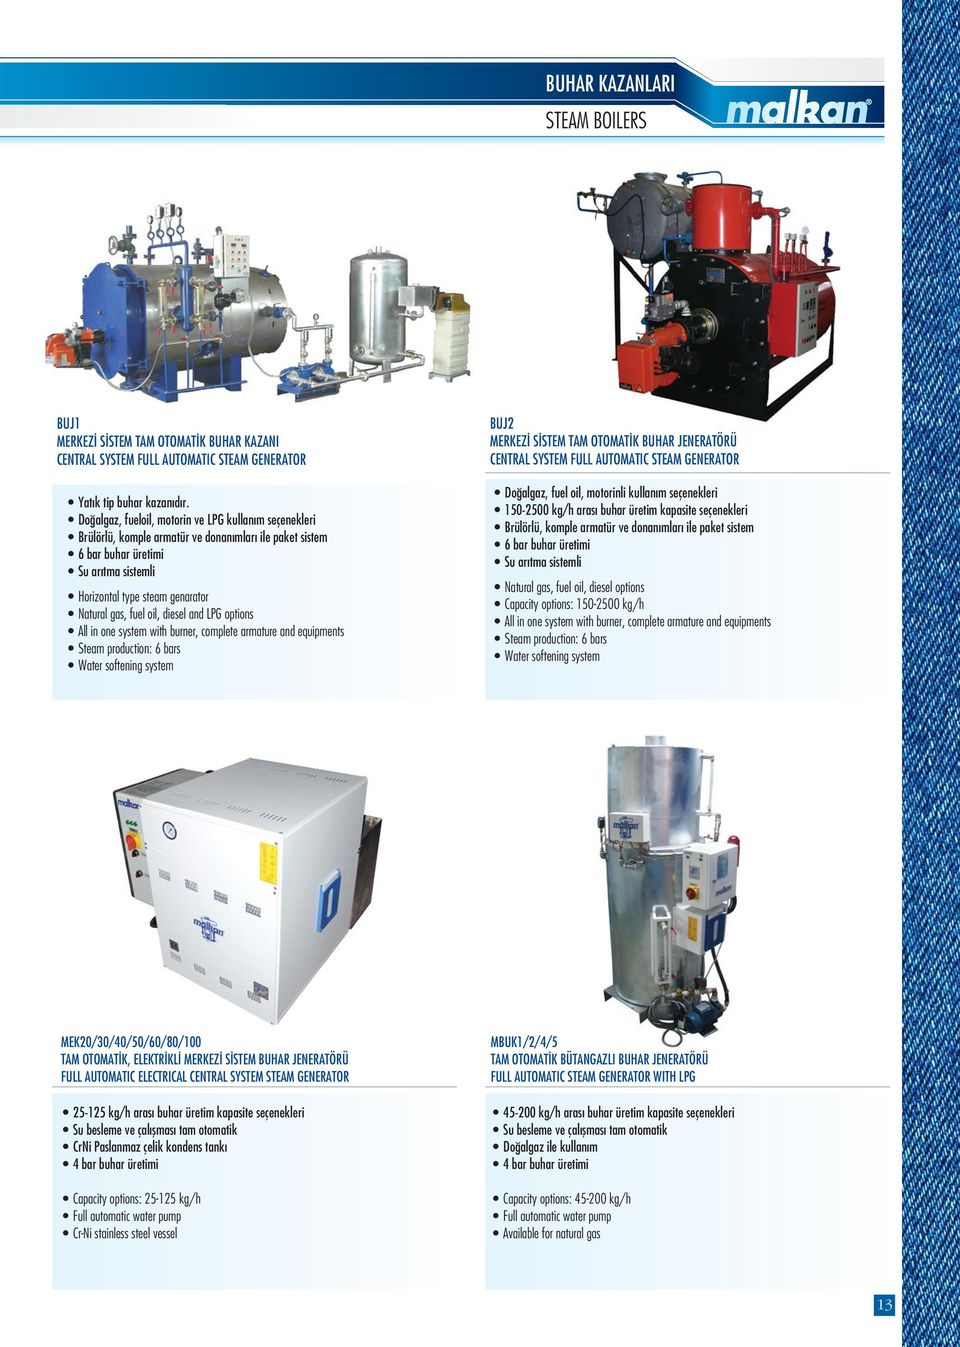 oil, diesel and LPG options All in one system with burner, complete armature and equipments Steam production: 6 bars Water softening system BUJ2 MERKEZ S STEM TAM OTOMAT K BUHAR JENERATÖRÜ CENTRAL